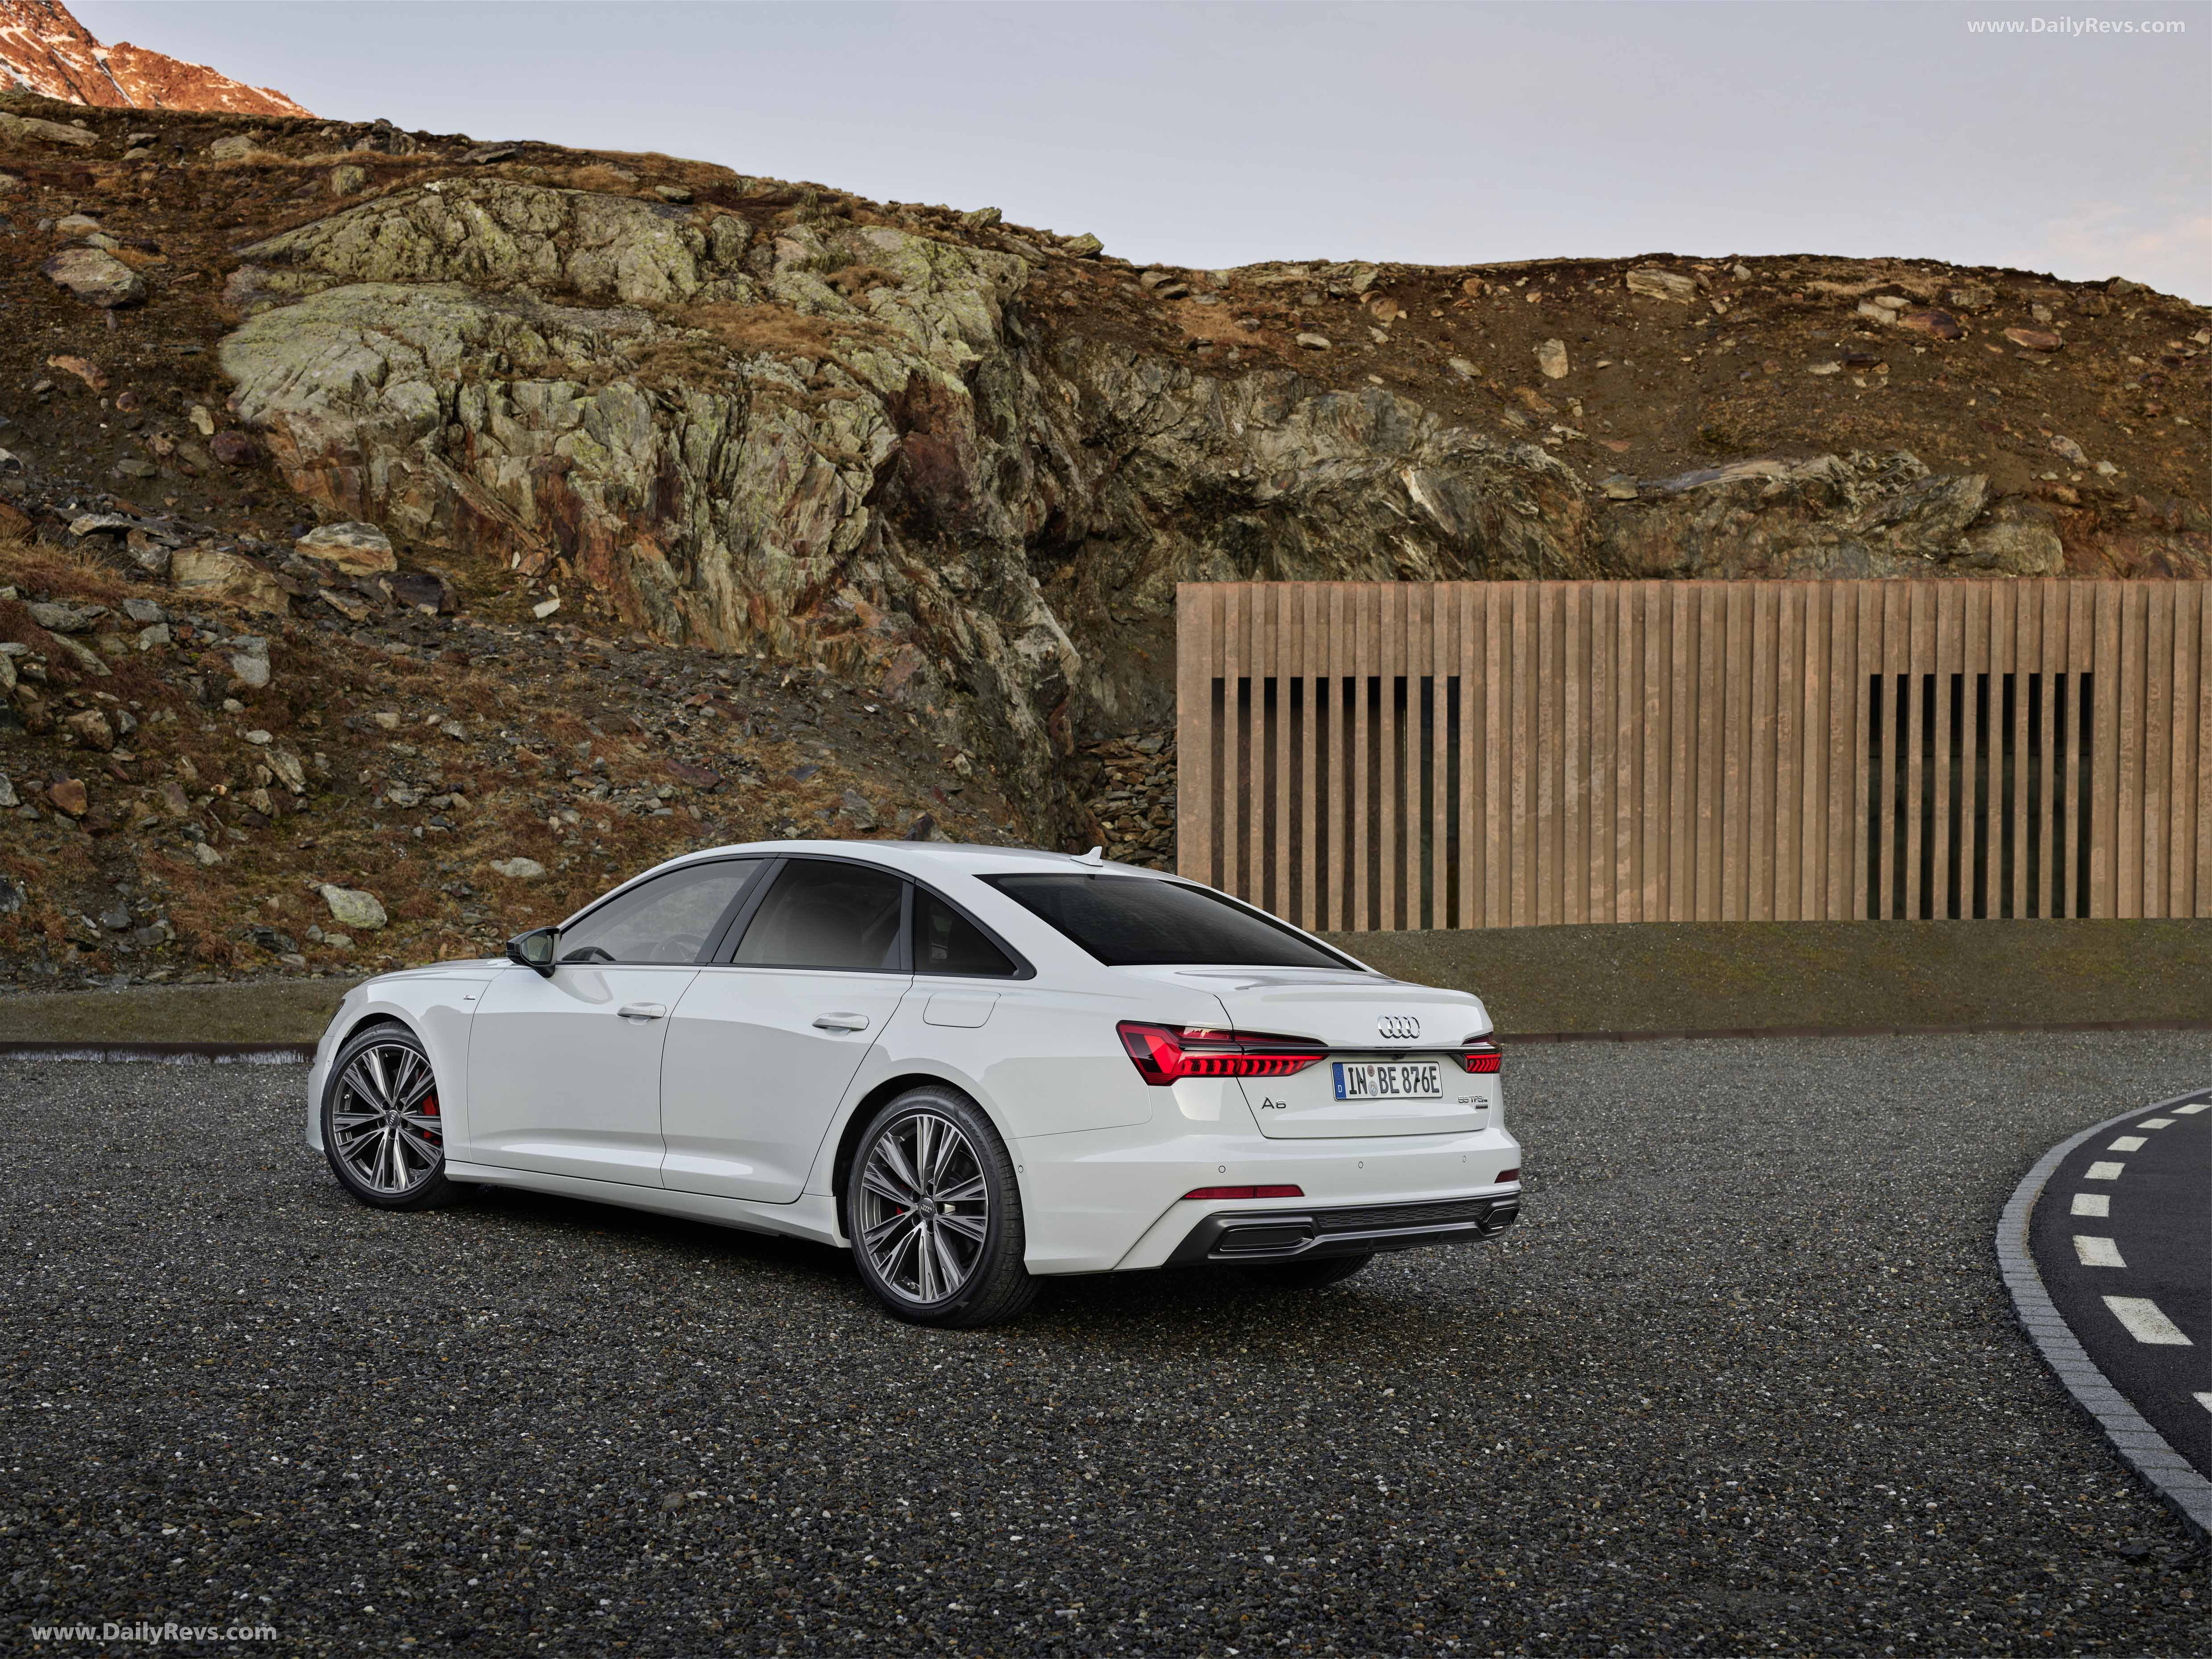 2020 Audi A6 TFSI - Pictures, Images, Photos & Wallpapers ...